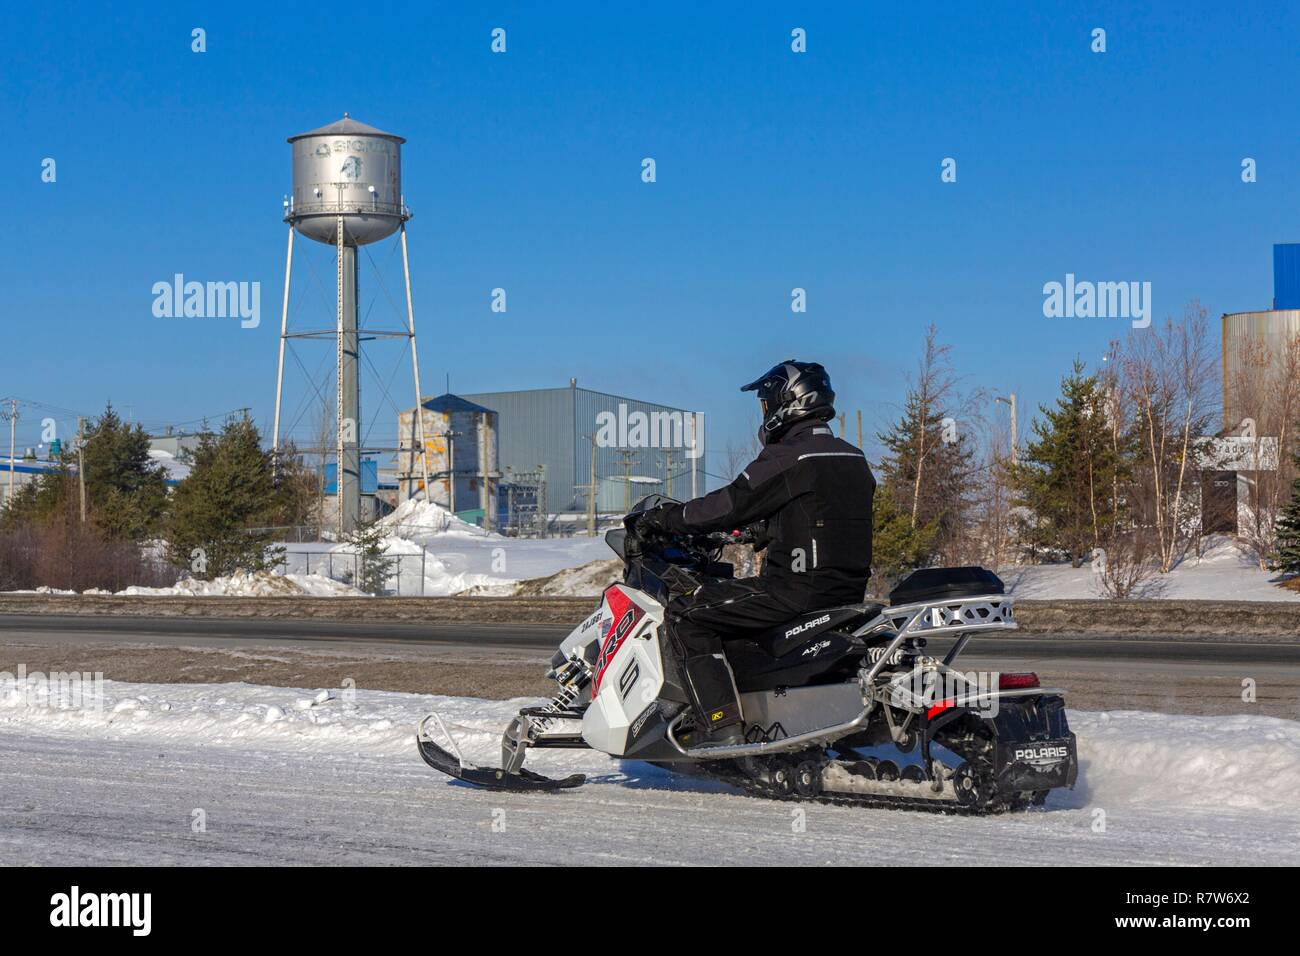 Canada, Province of Quebec, Abitibi Témiscamingue Region, Abitibi, Val d'Or, Lamaque Eldorado Gold Mine, snowmobile - Stock Image